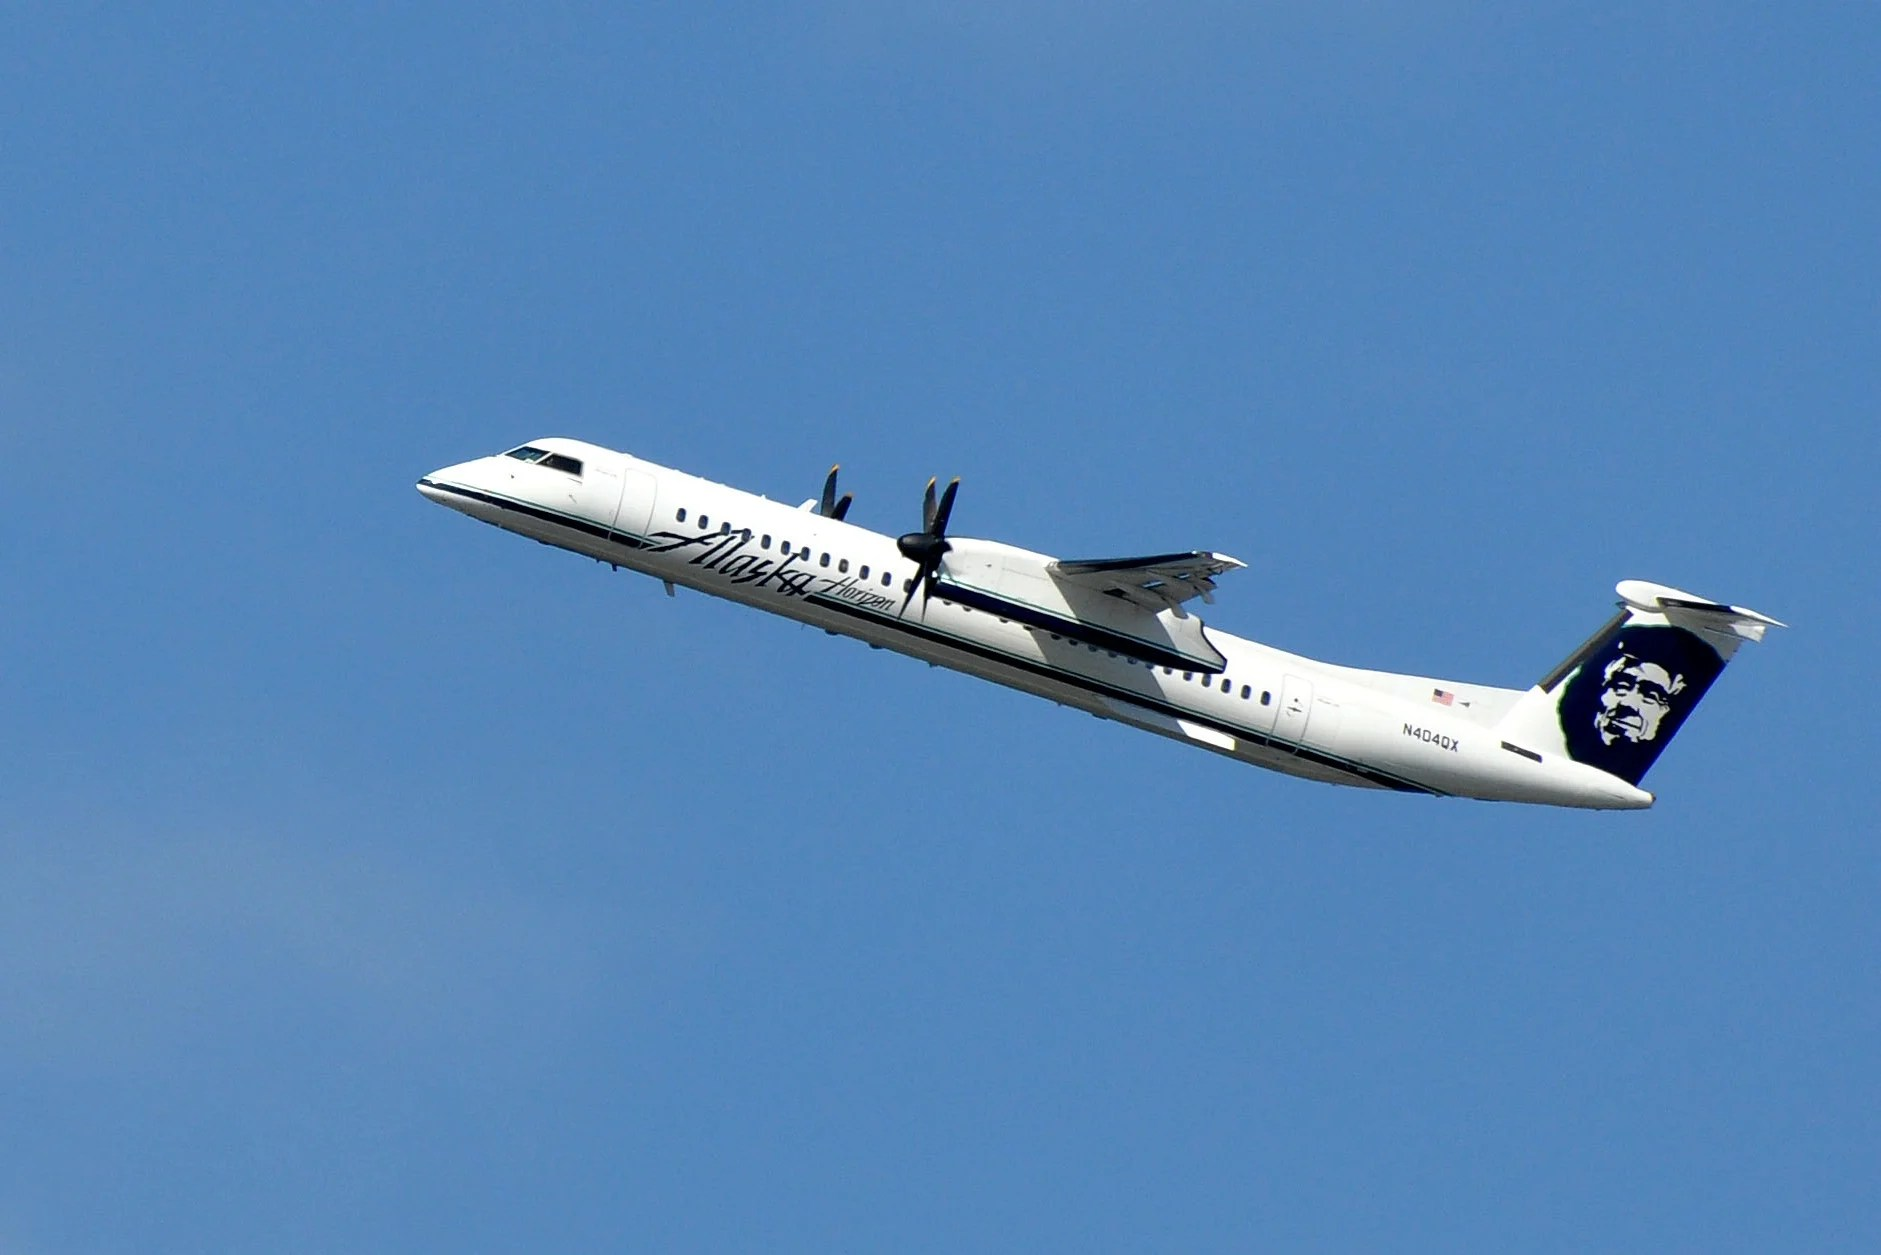 Horizon Air Q400 Crashes After Being Stolen From Seattle